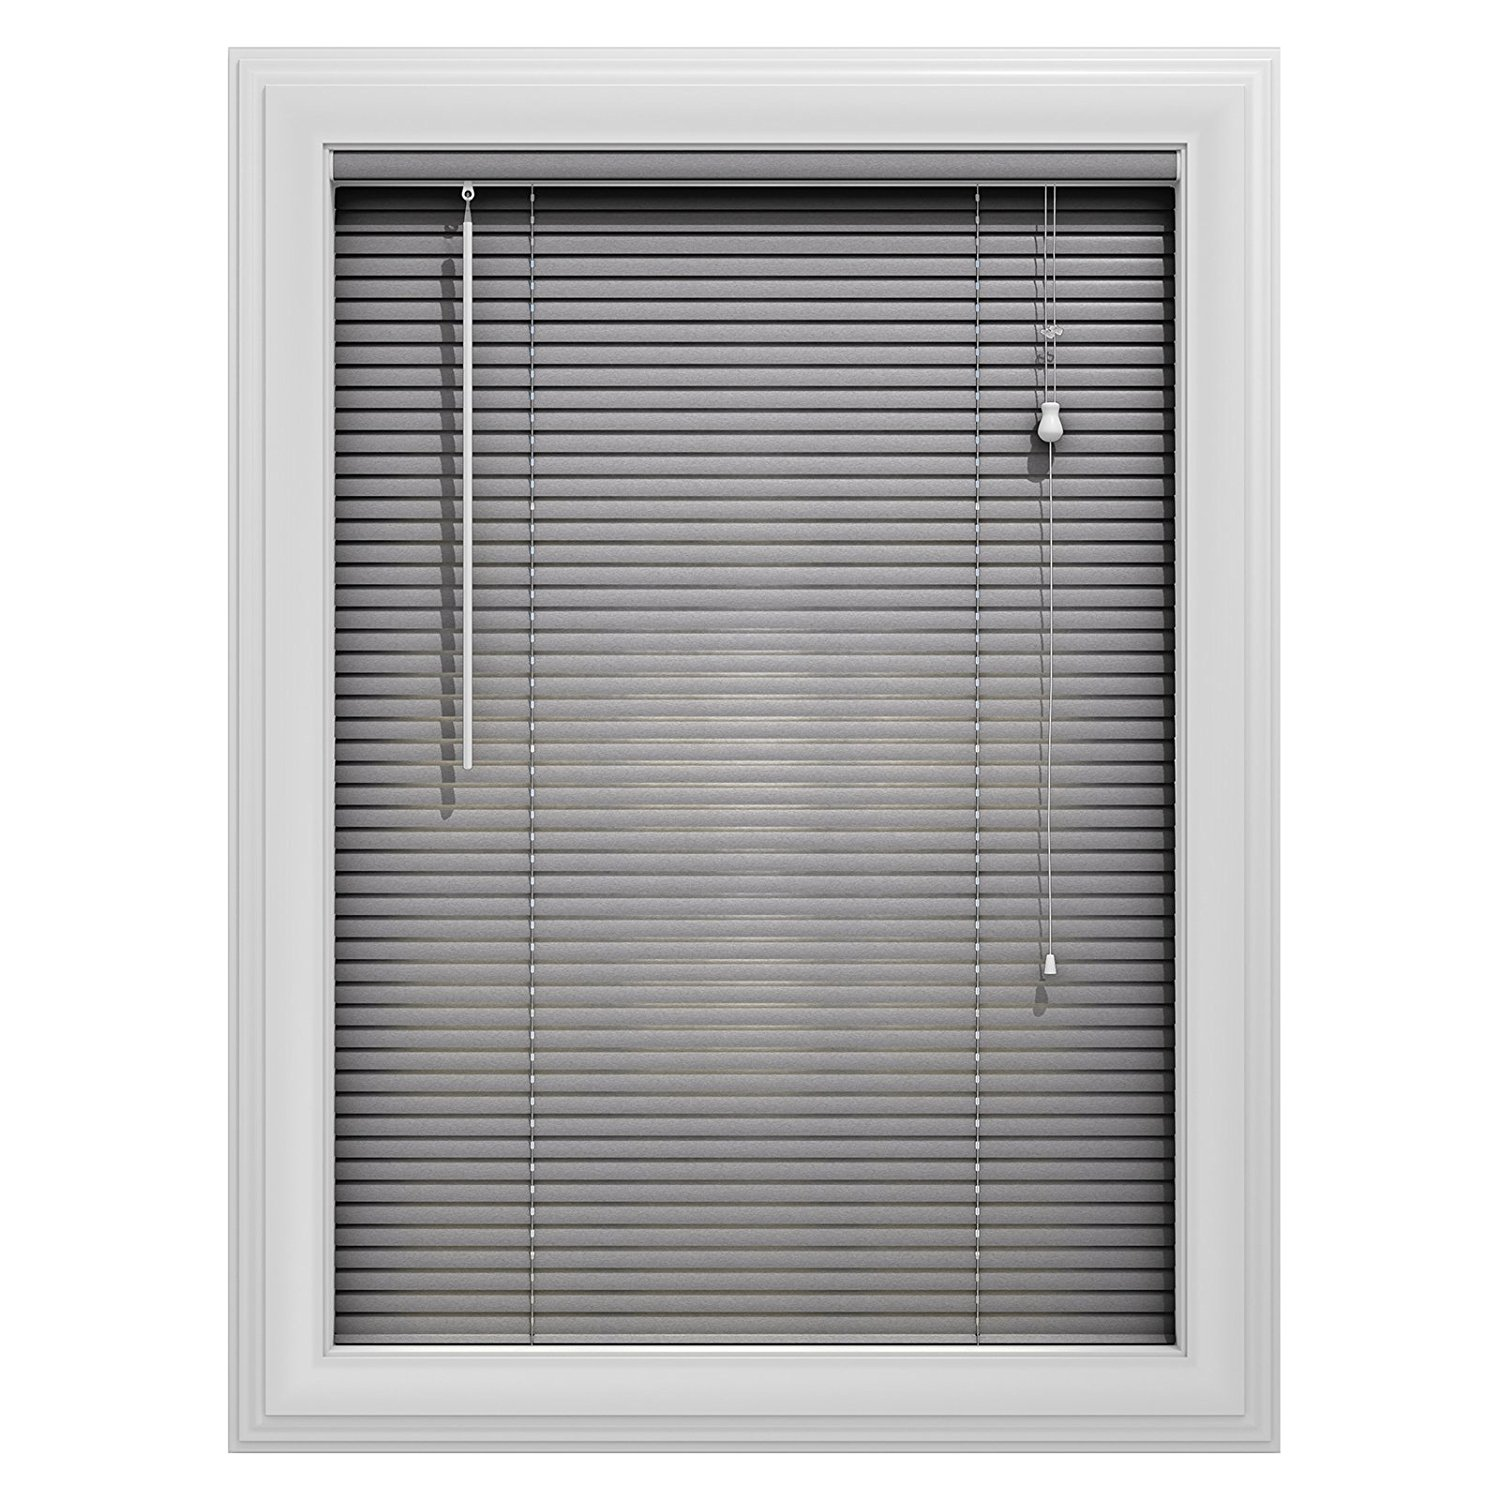 window windows hypermallapartments fresh blinds of architecture inspiring luxury lowes shutters decor custom with ideas